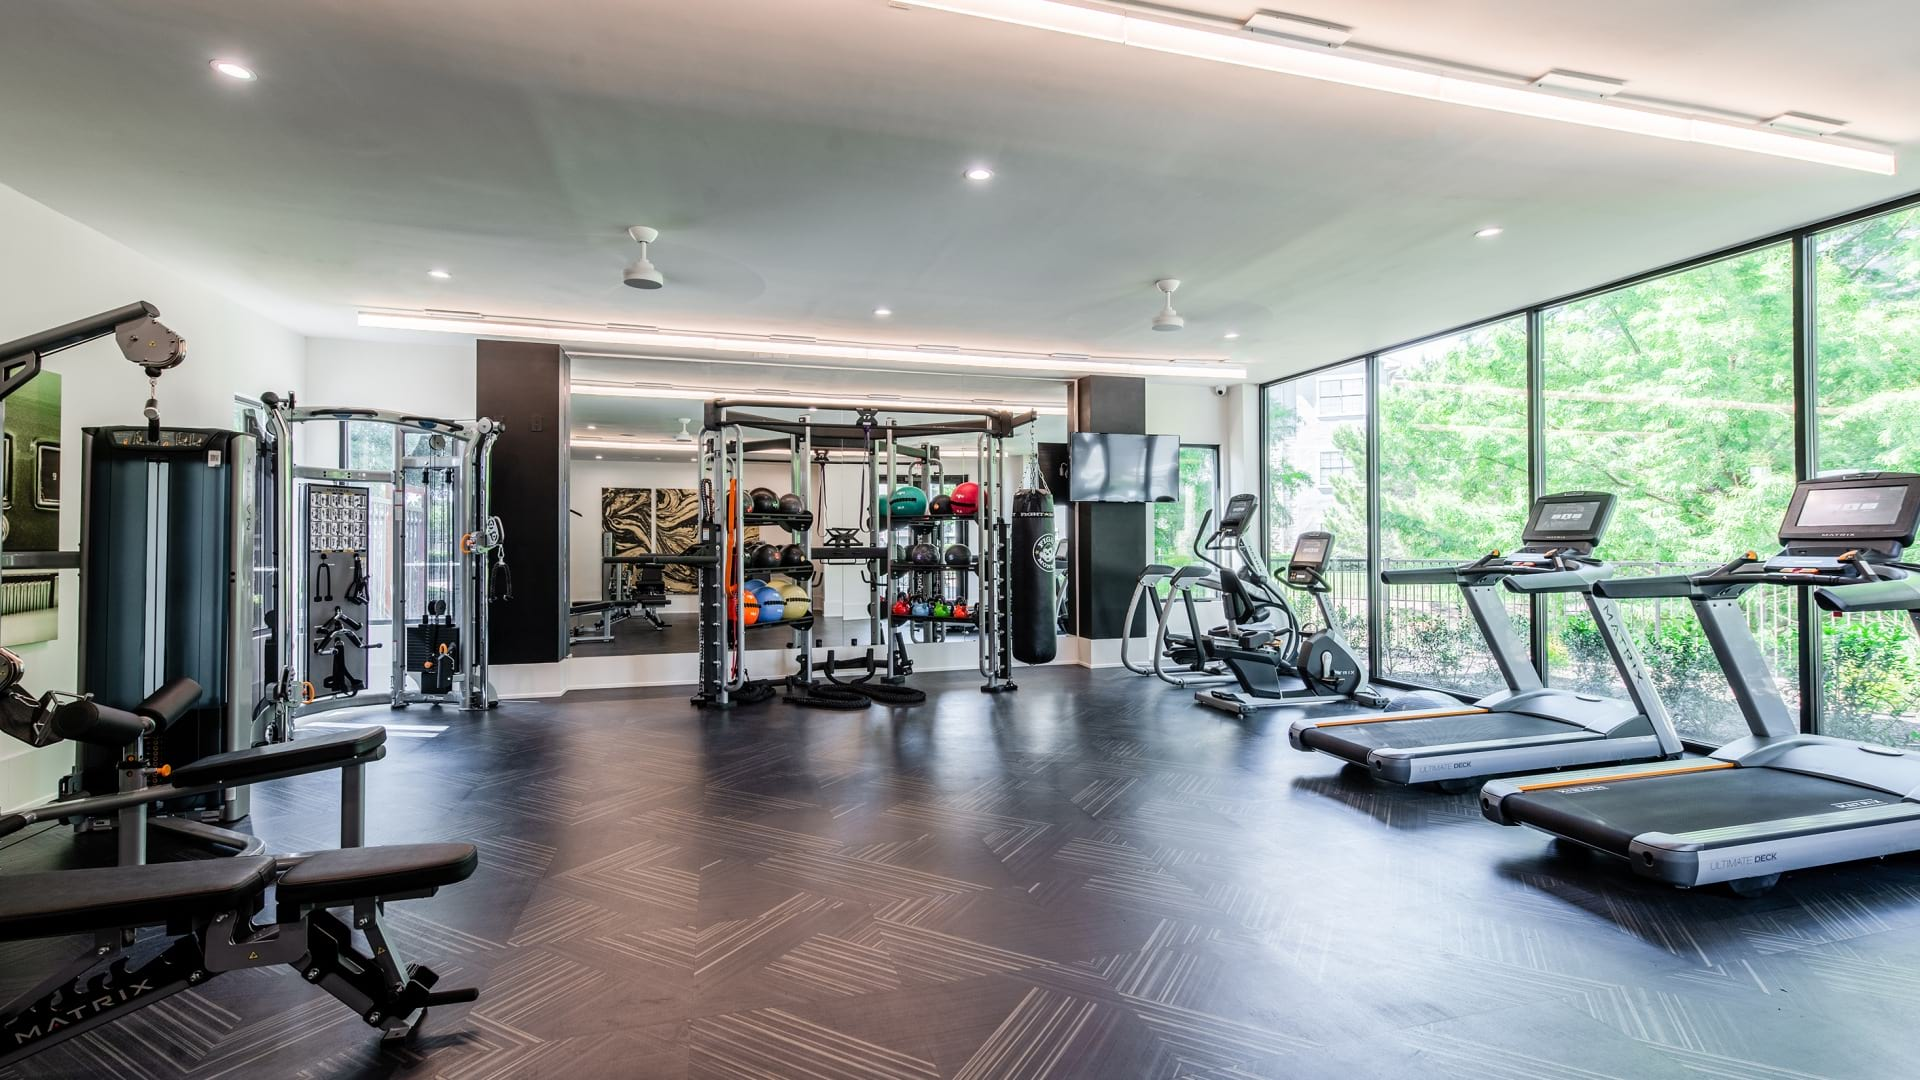 Fitness center at apartments in Fort Worth, TX